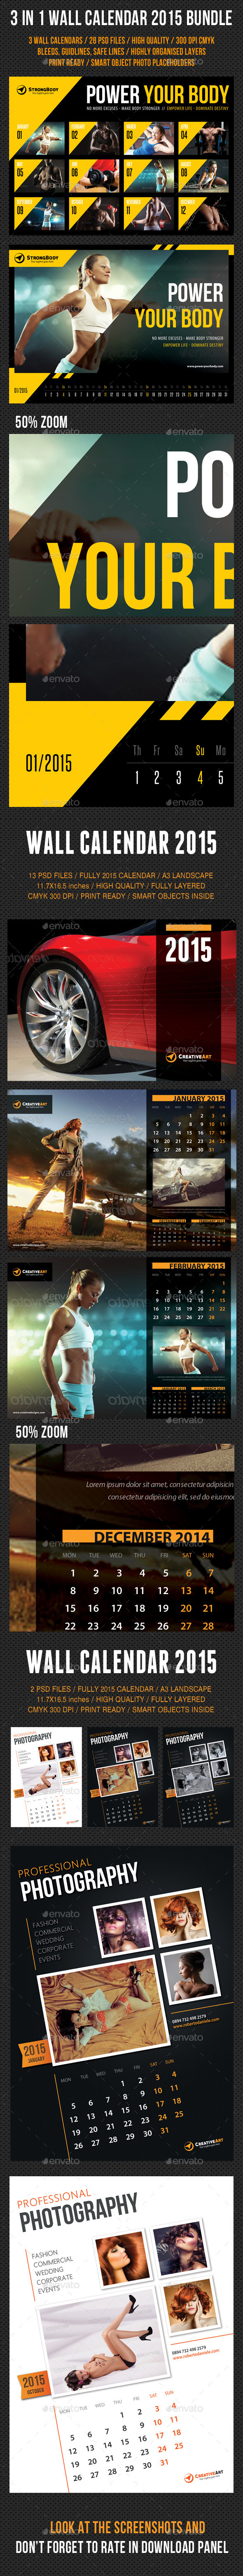 GraphicRiver 3 in 1 Wall Calendar 2015 Bundle V03 9435860